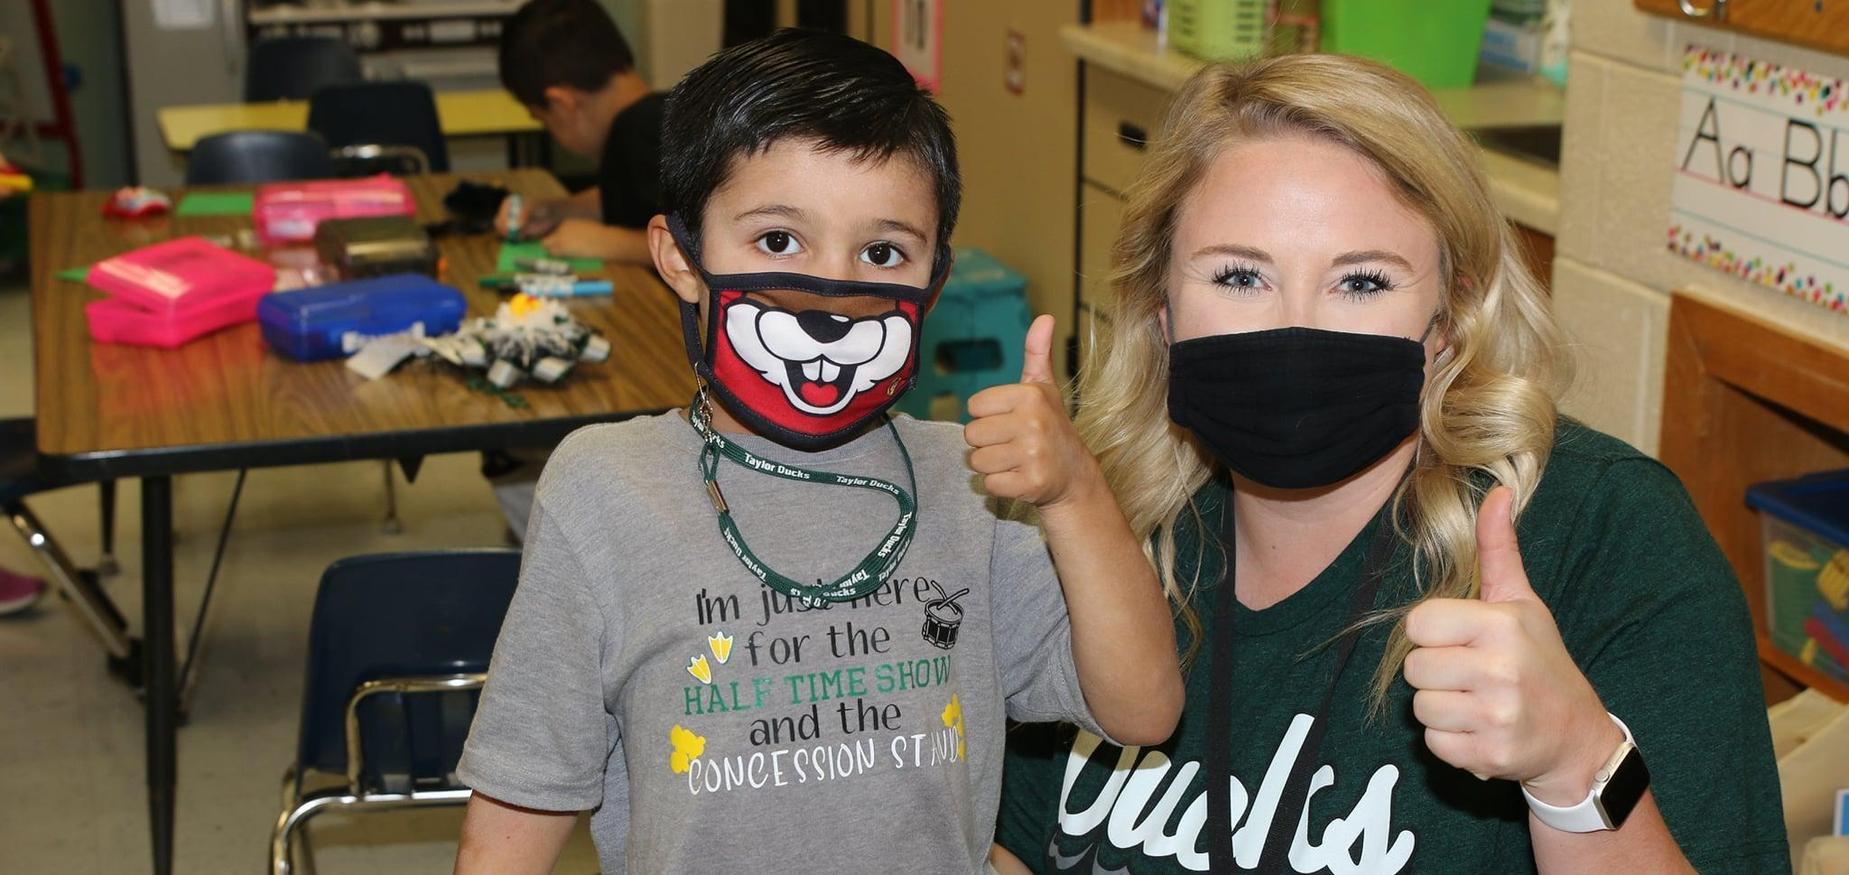 Student and teacher give thumbs up!